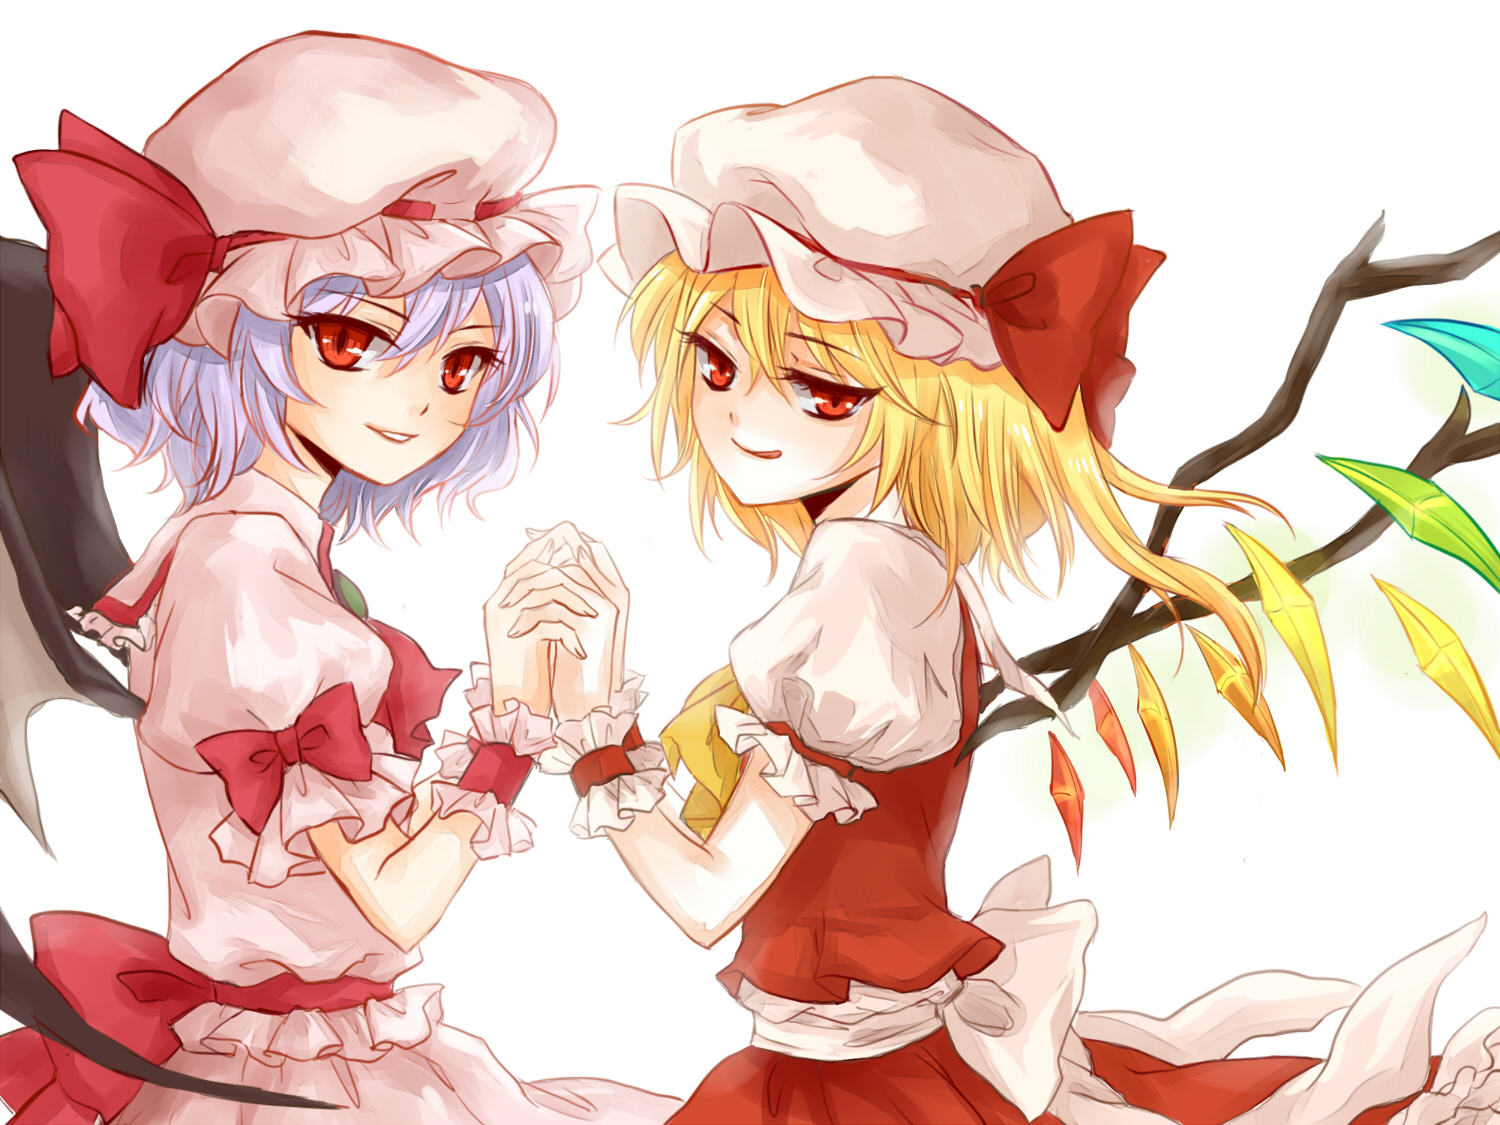 2girls blonde_hair blue_hair bow flandre_scarlet hat oxlee red_eyes remilia_scarlet short_hair touhou vampire wings